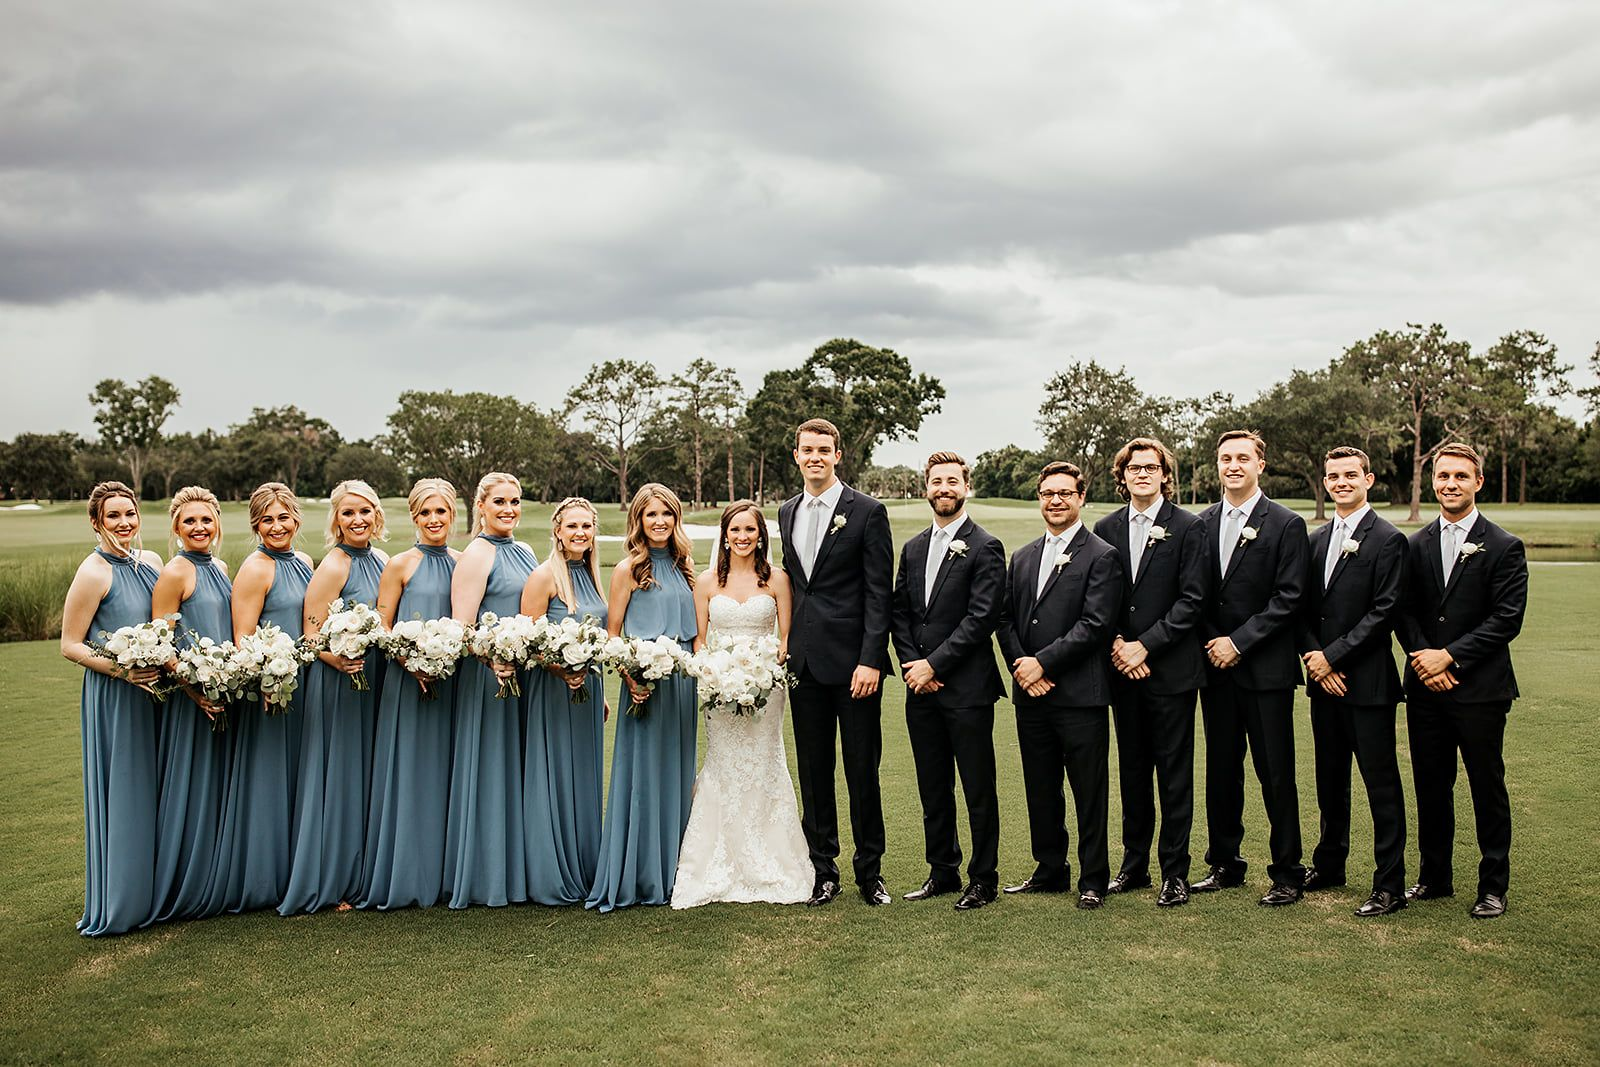 Wedding Party With Groomsmen In Black Tuxedos And Light Blue Ties And Bridesmaids In Dusty Blu Slate Blue Wedding Blue Groomsmen Dusty Blue Bridesmaid Dresses [ 1067 x 1600 Pixel ]